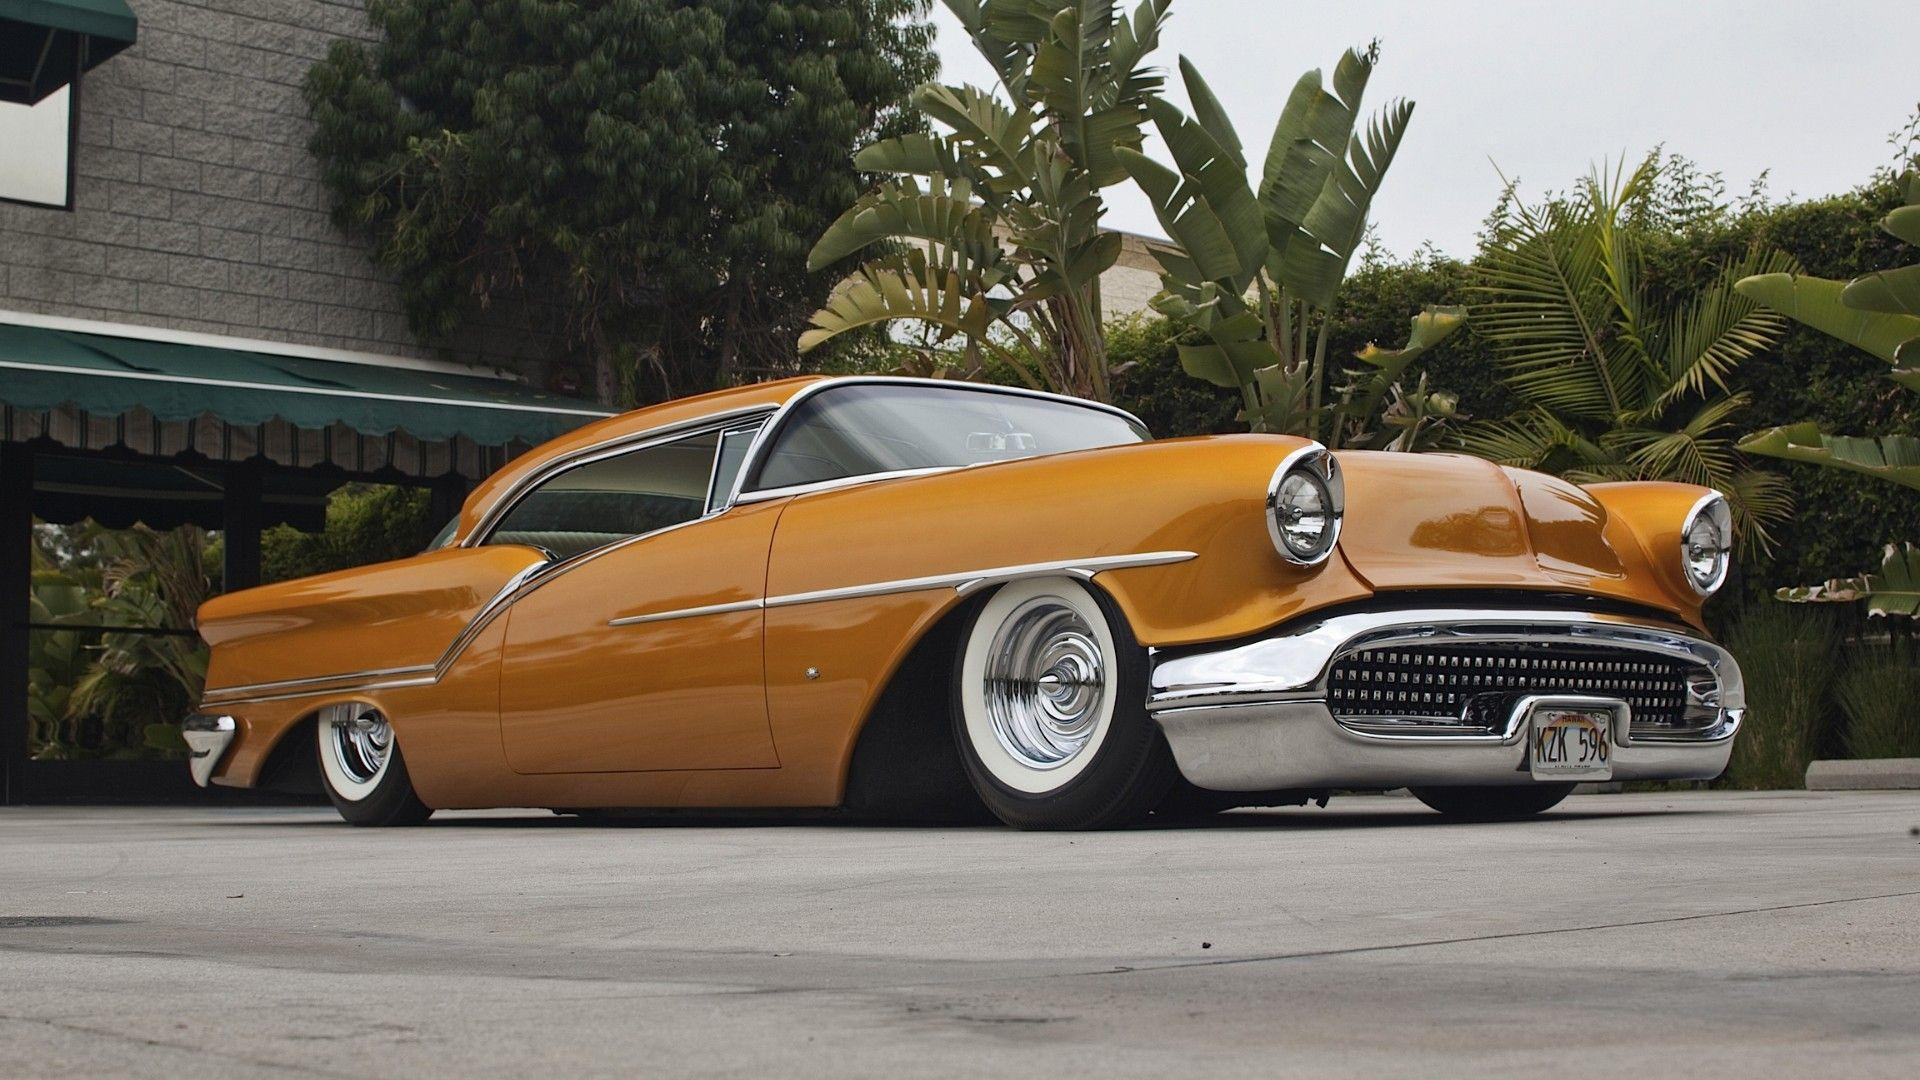 Lowrider Car Wallpapers - Wallpaper Cave